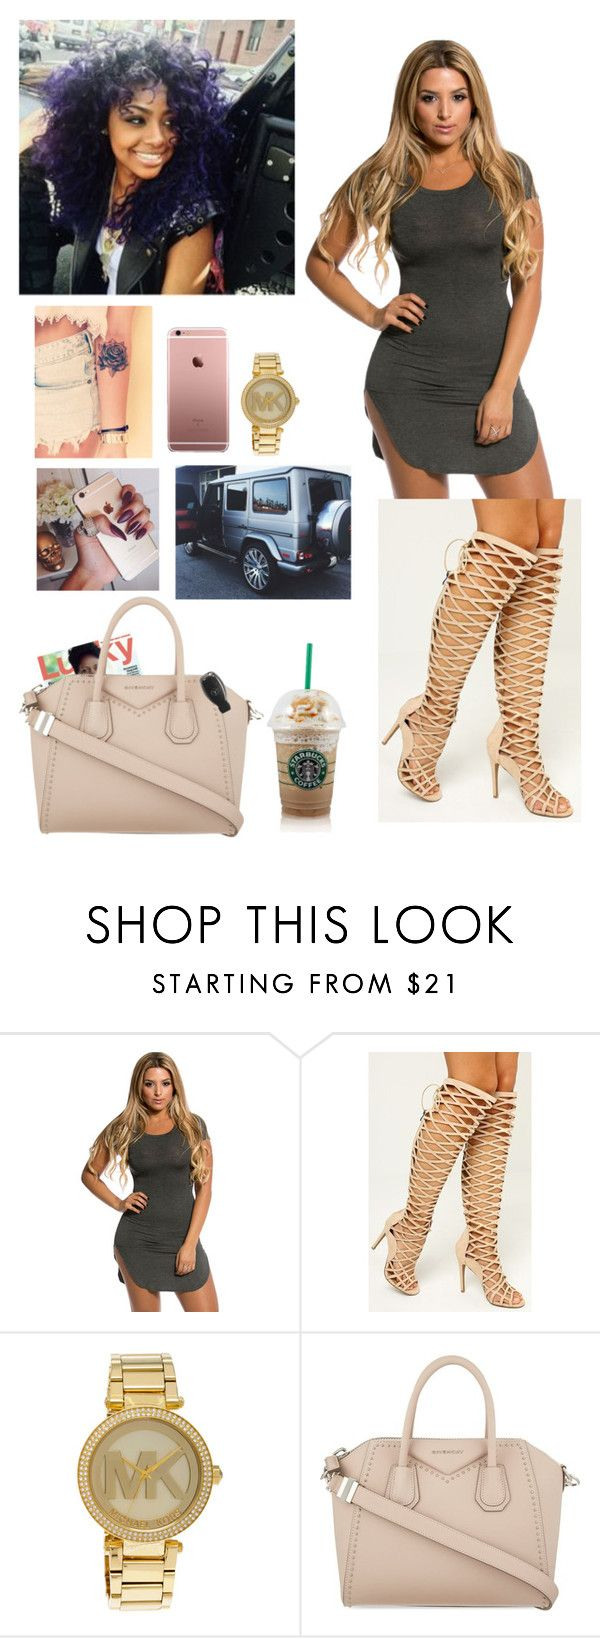 """""""Skye's the limit.;)"""" by anicolelauren ❤ liked on Polyvore featuring Michael Kors, Givenchy, women's clothing, women's fashion, women, female, woman, misses and juniors"""